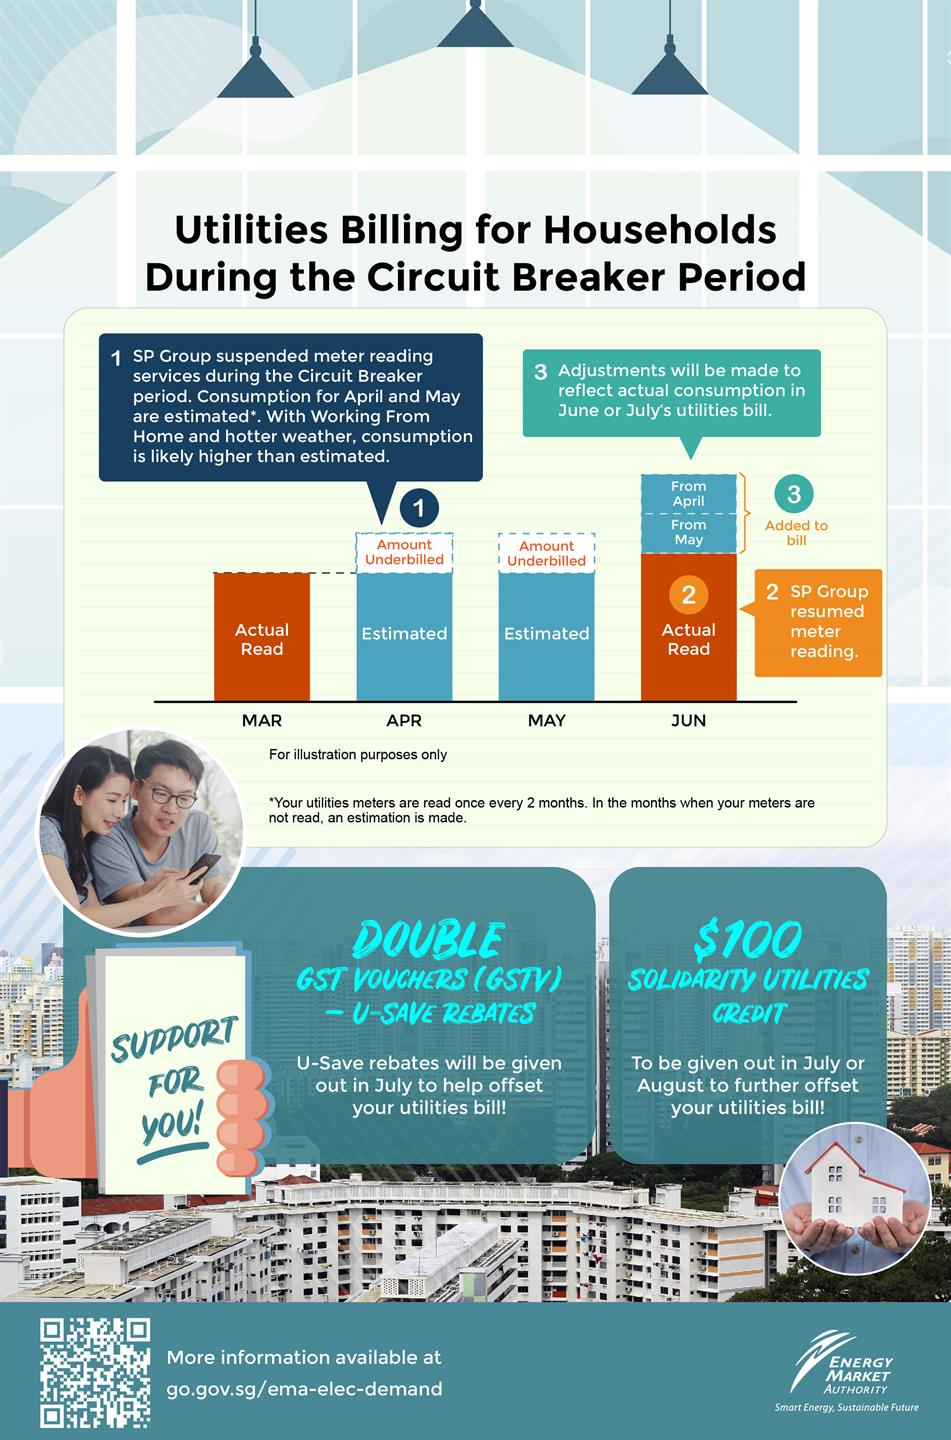 Utilities Billing during Circuit Breaker